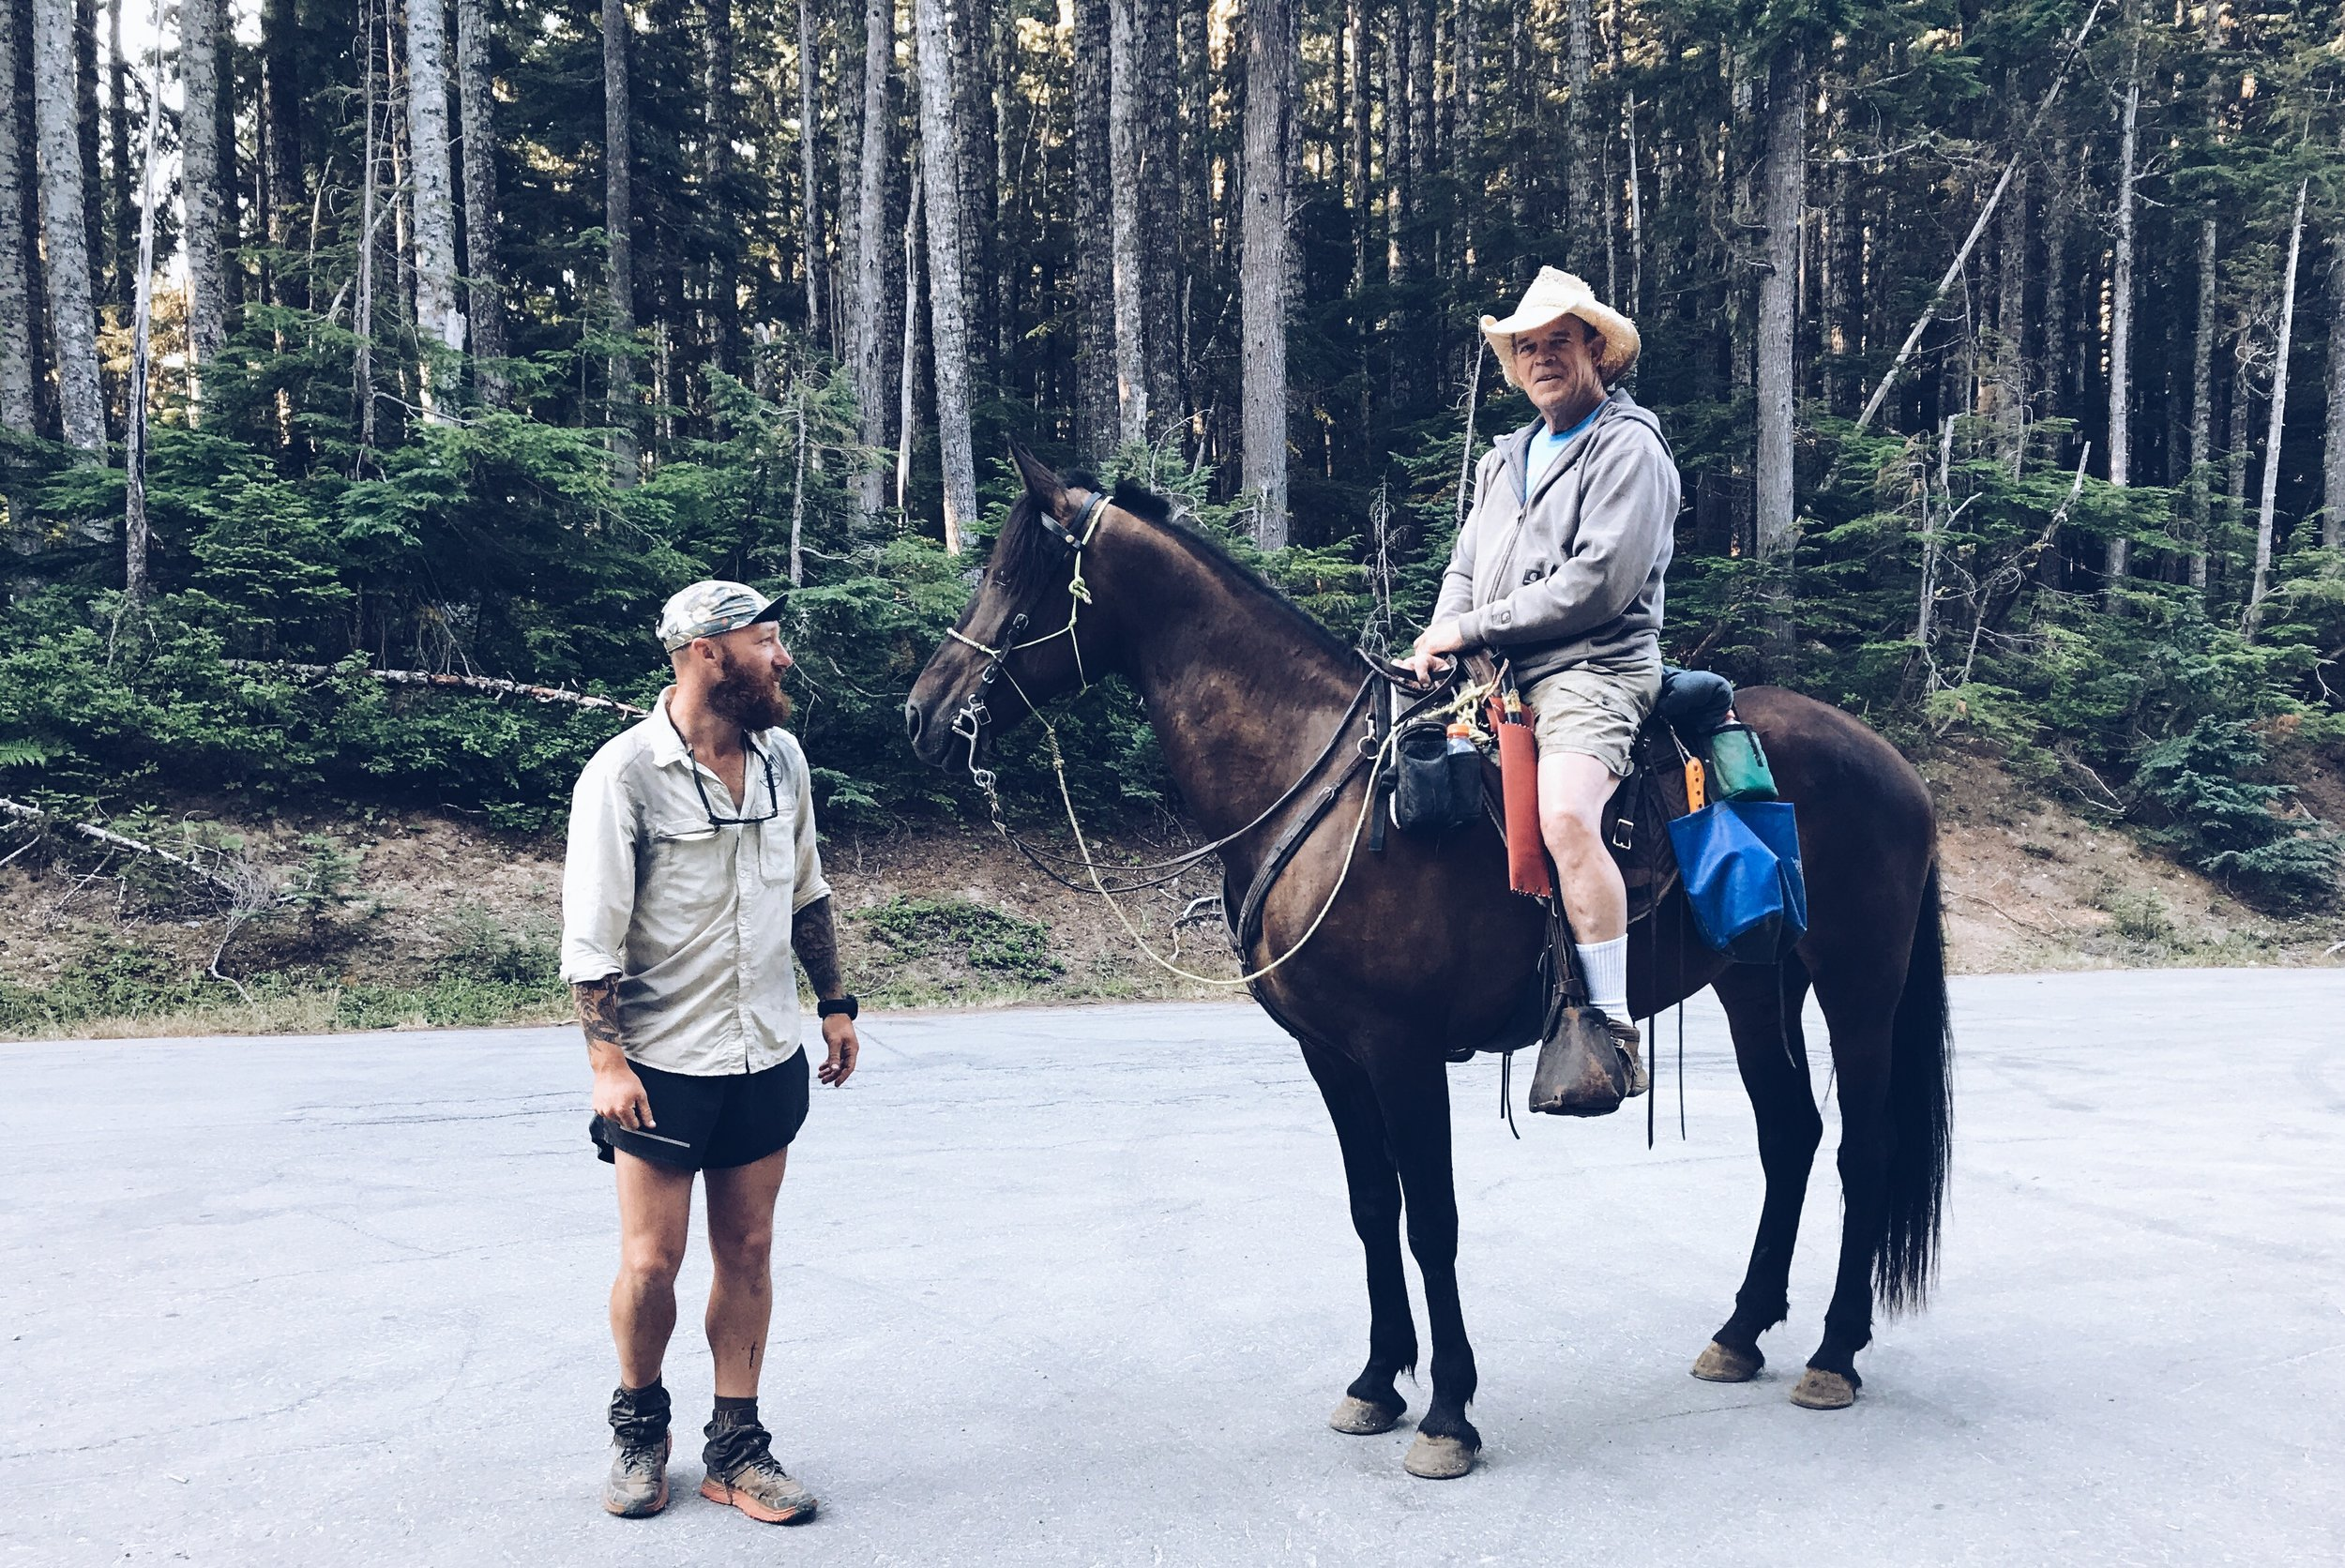 This guy has been riding his horse since the Southern Terminus. Crazy, right?